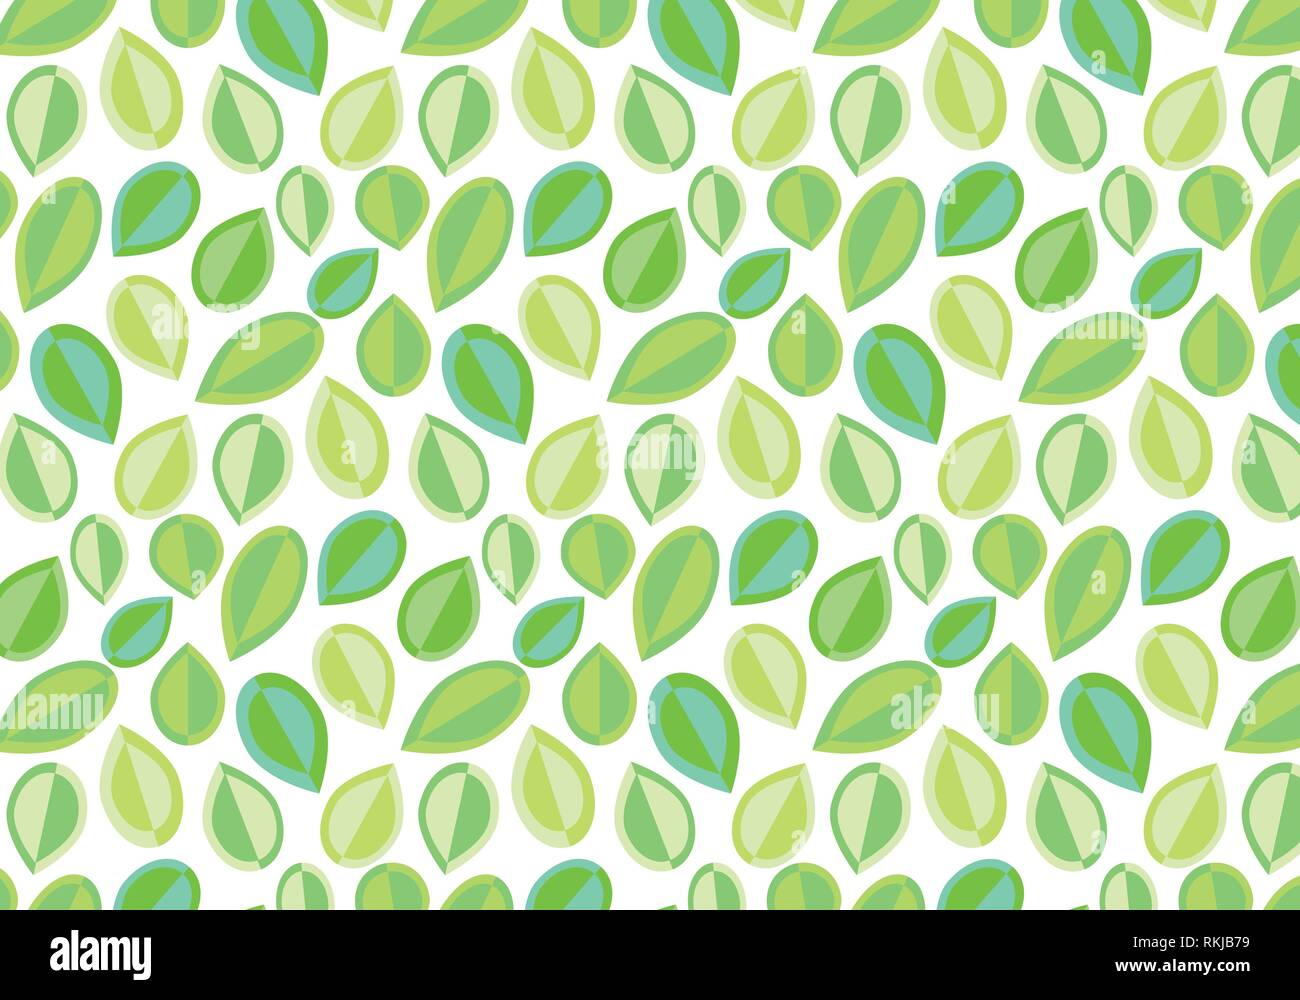 Abstract leaves vector pattern in pastel colors green and blue white background - Stock Image